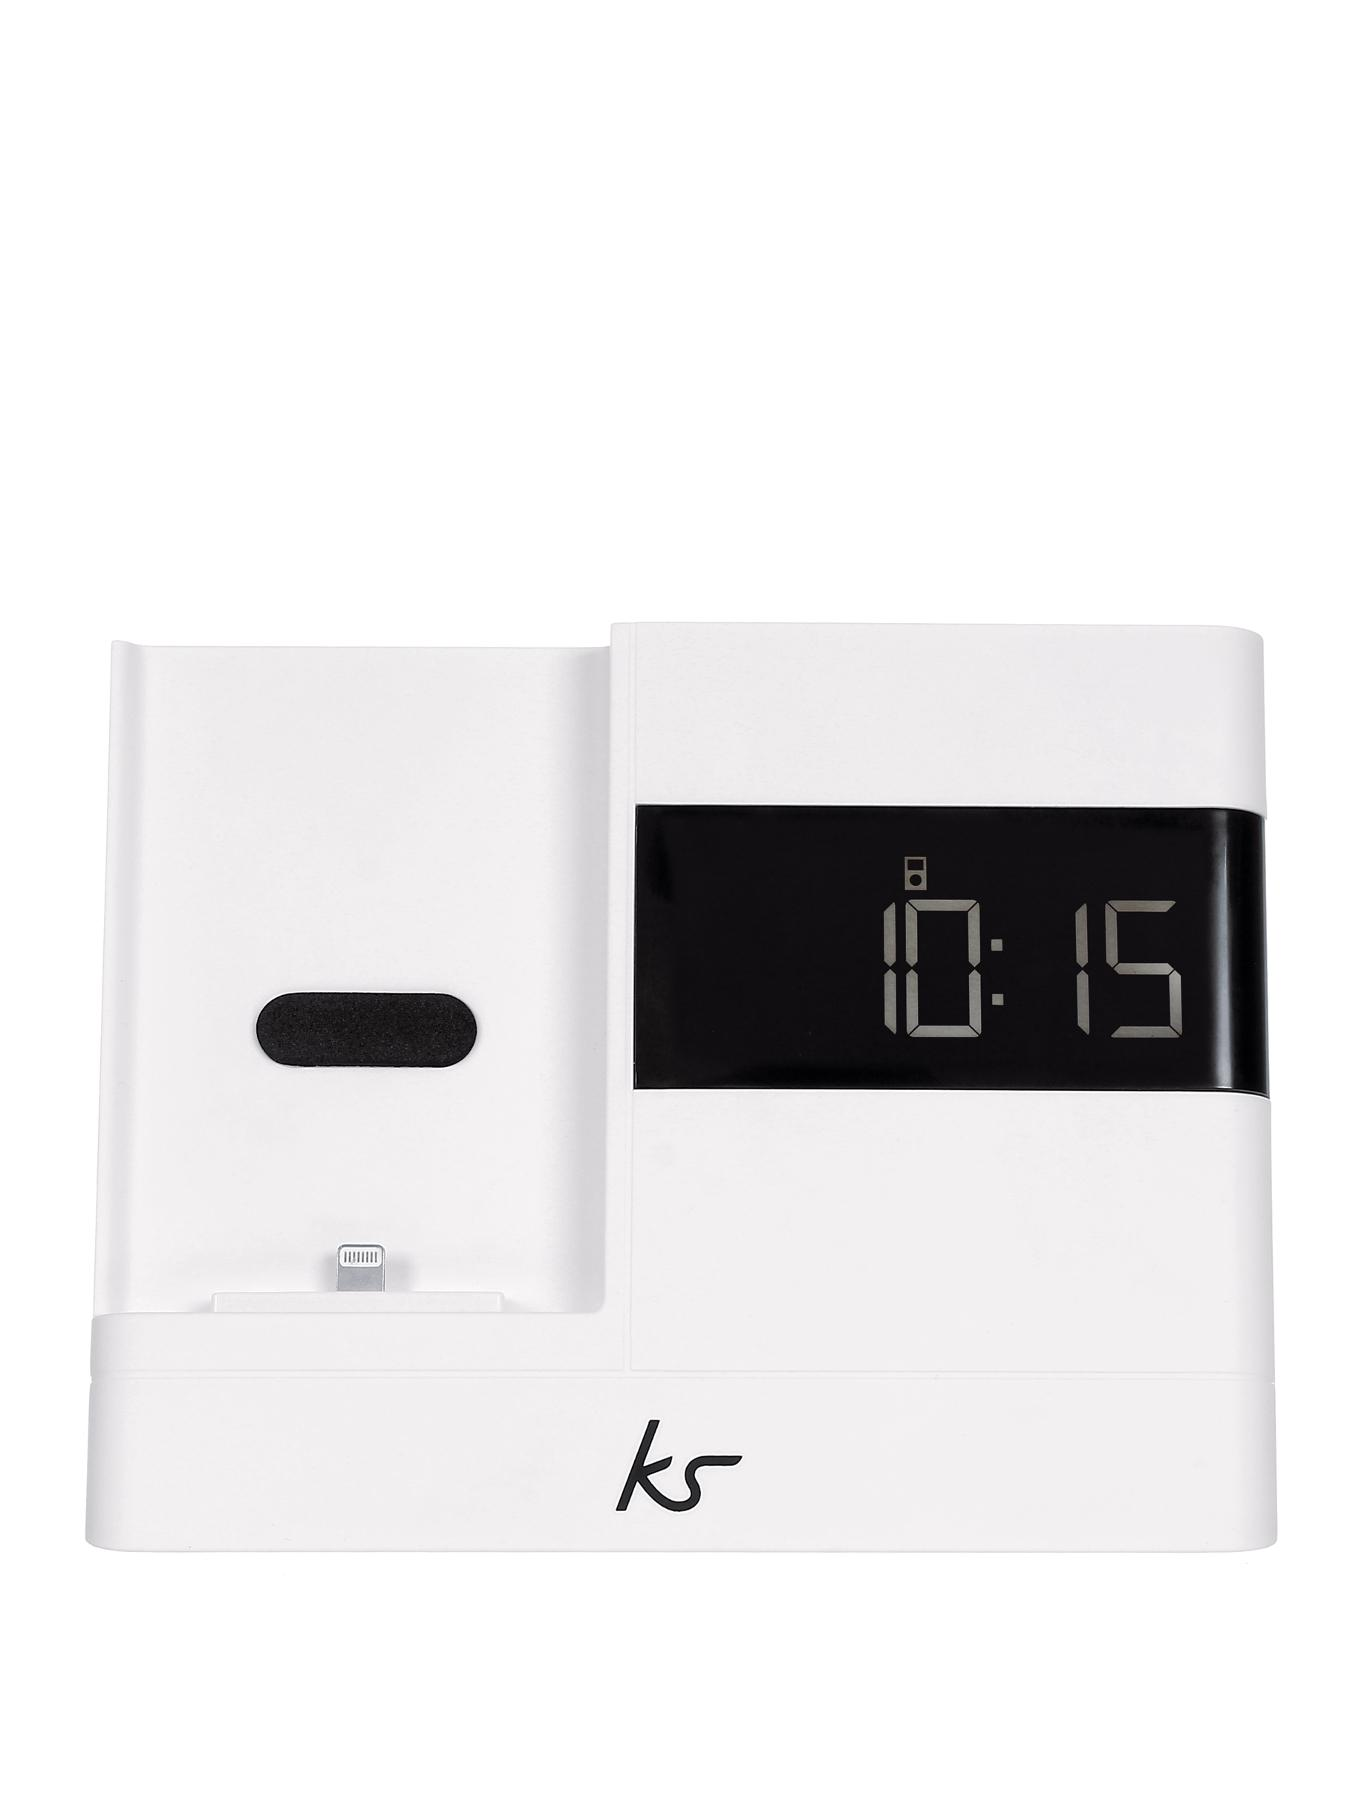 X-Dock 2 Lightning Connector Clock Radio Dock for iPhone 5 White at Littlewoods